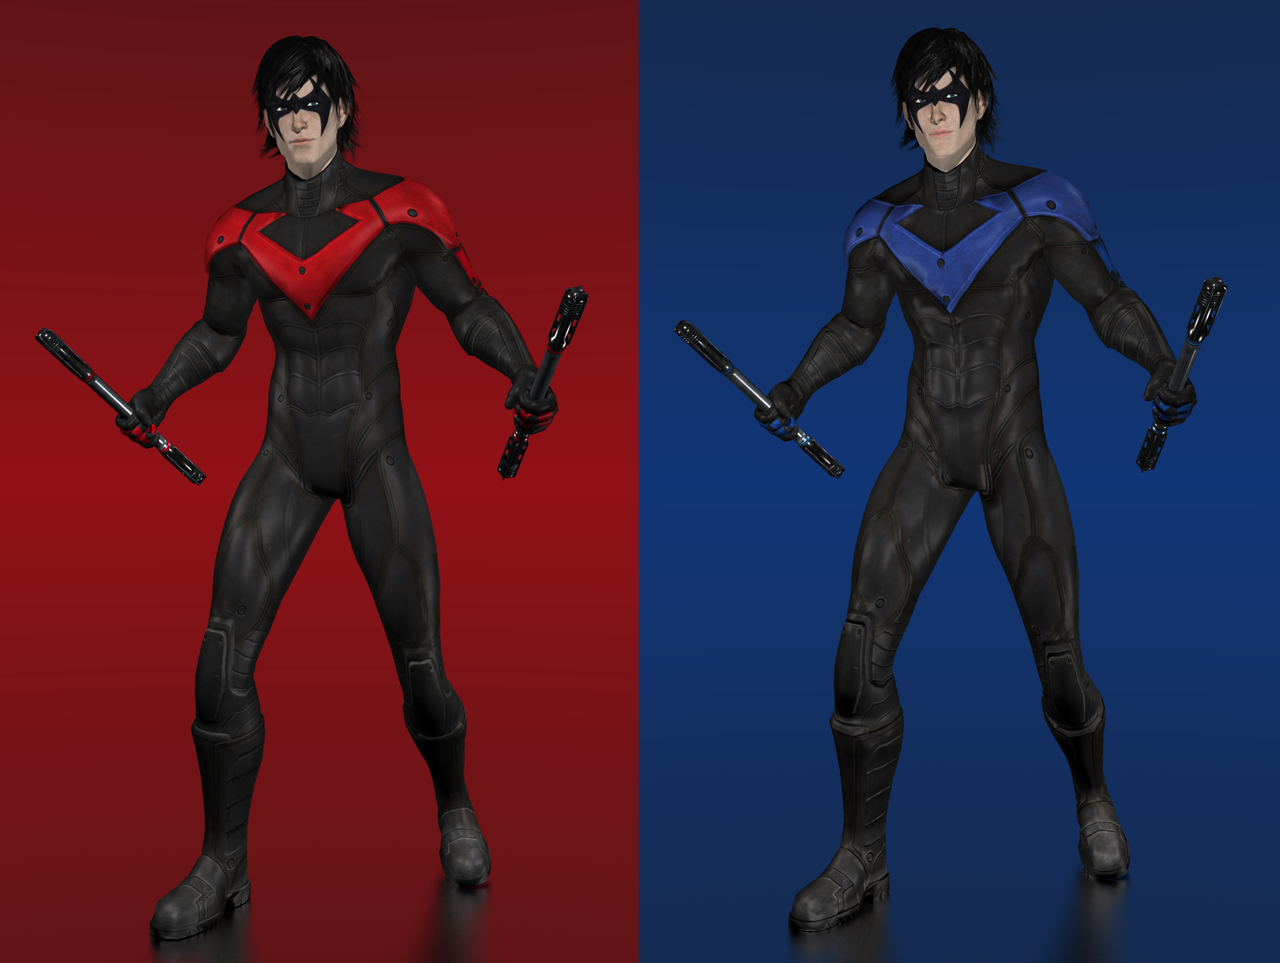 Batman arkham city nightwing by ishikahiruma on deviantart batman arkham city nightwing by ishikahiruma buycottarizona Choice Image